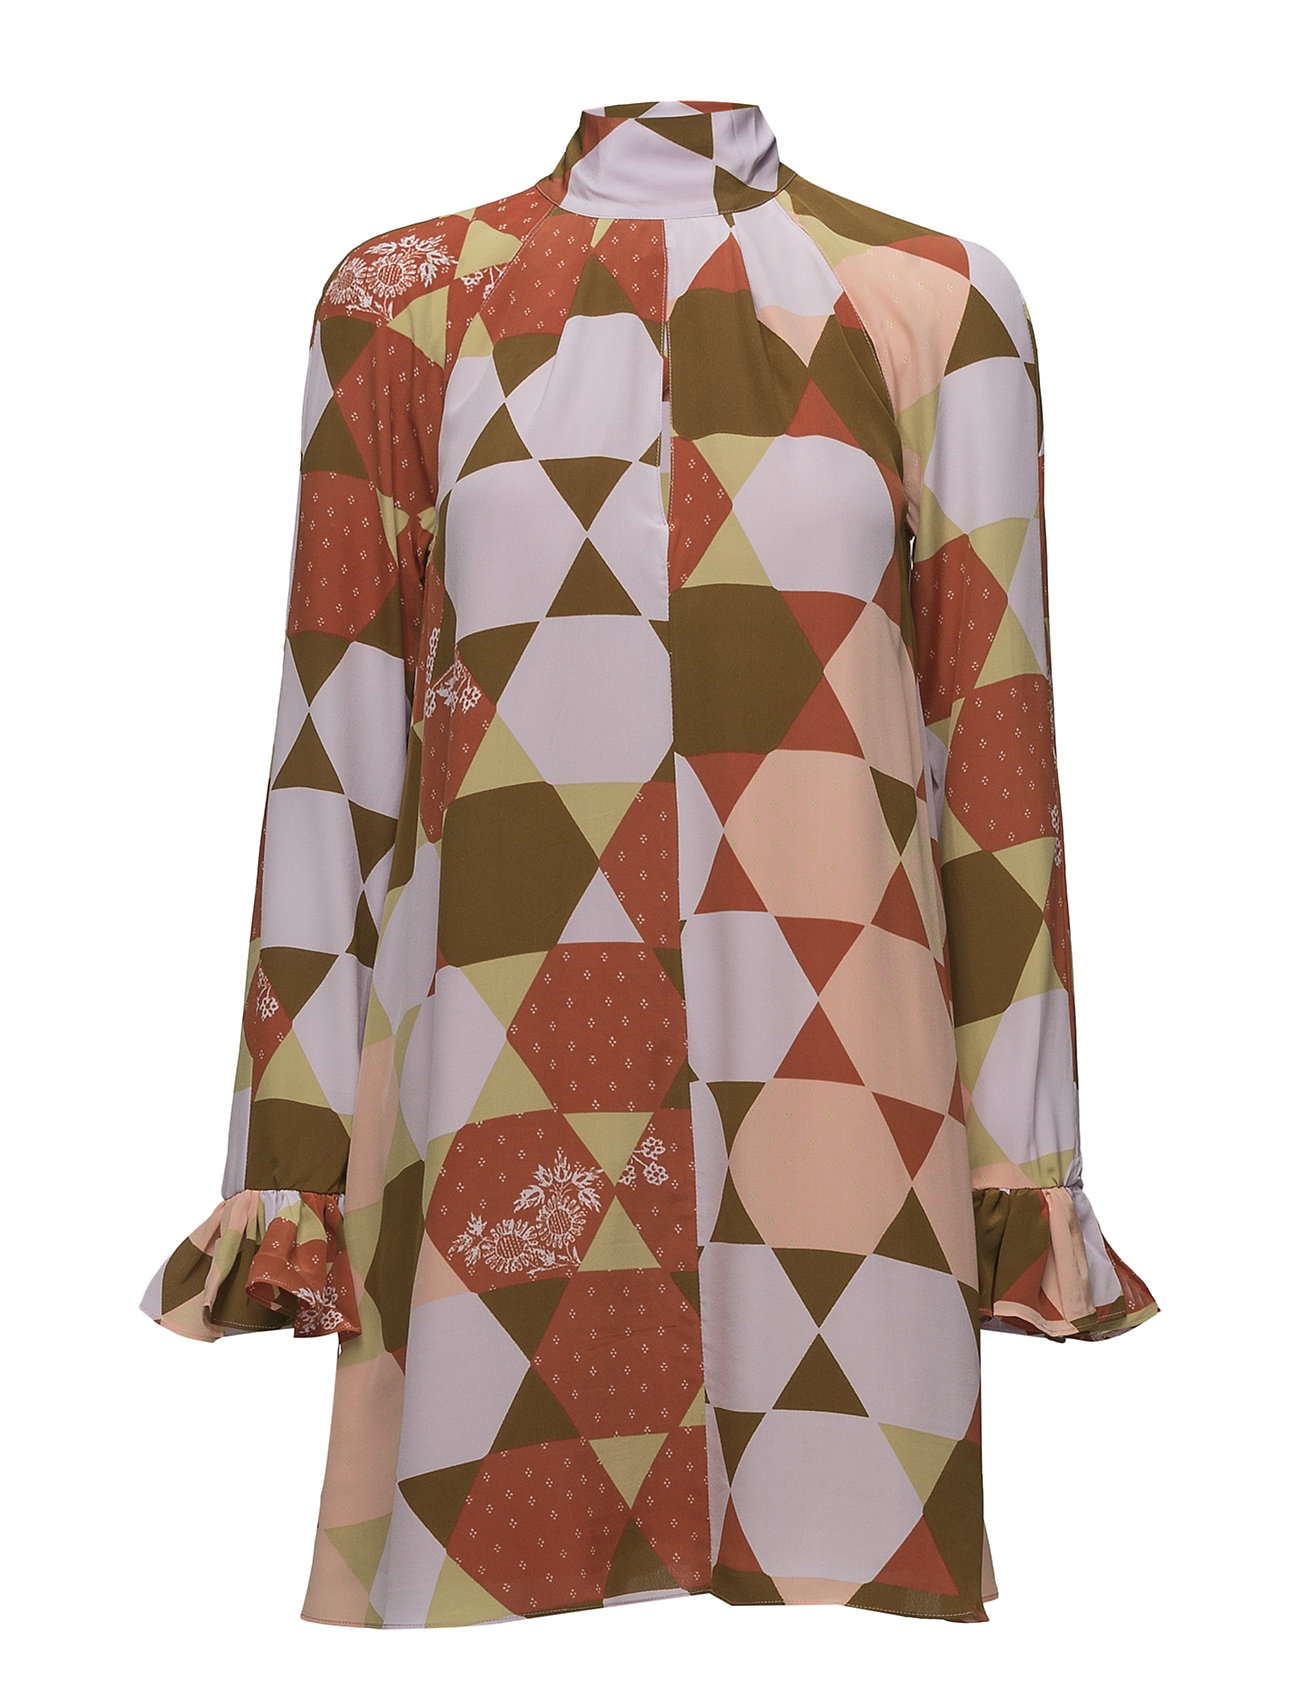 STINE GOYA Tara, 420 Hexagons Silk - HEXAGONS SOFT